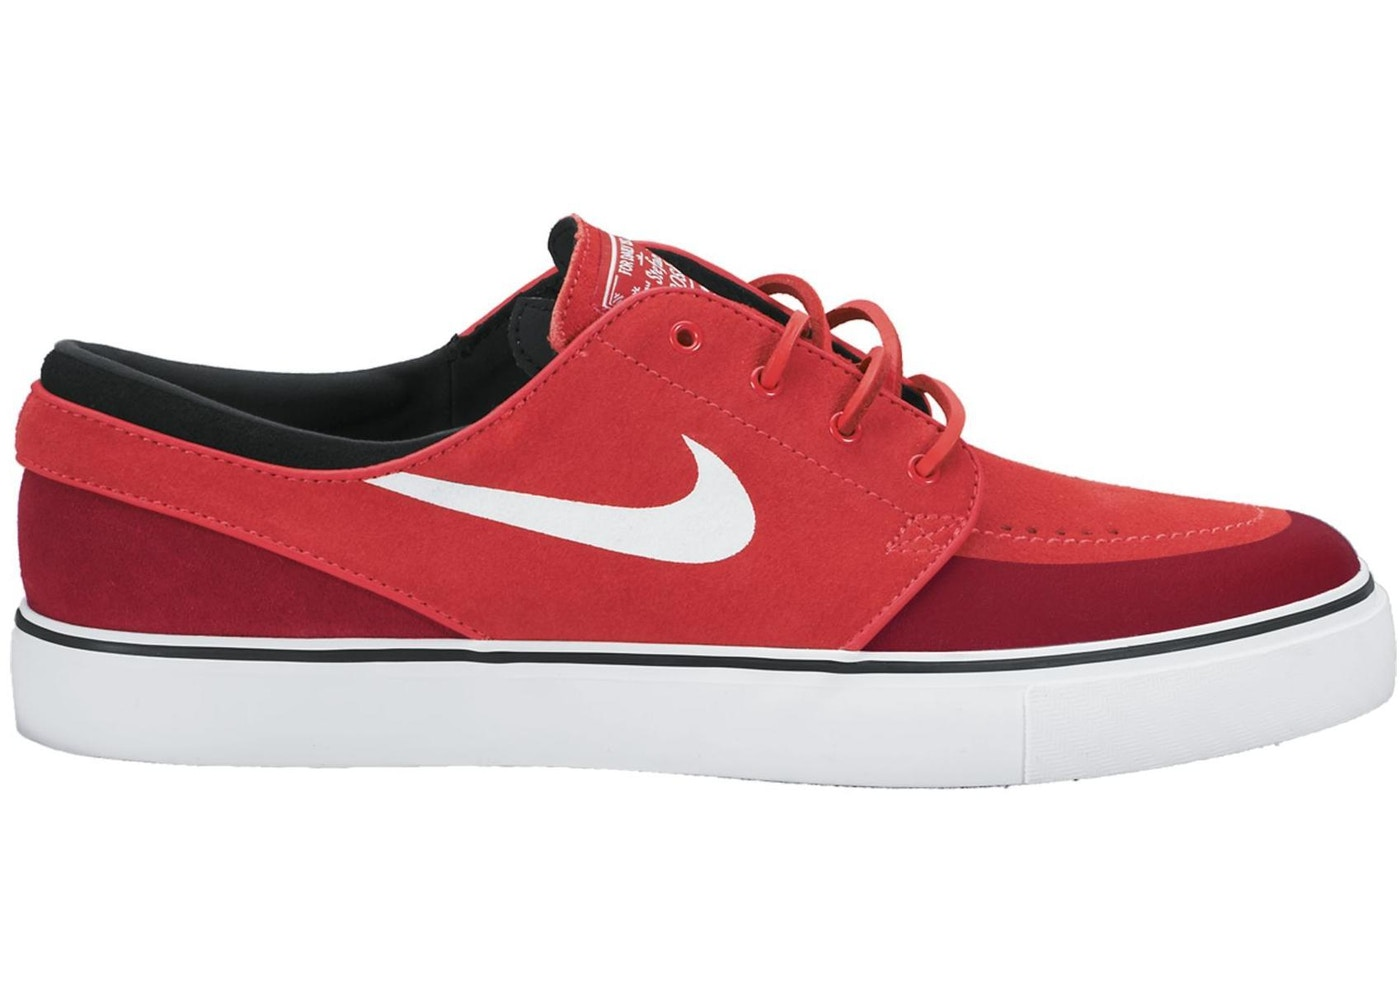 Buy Nike SB Janoski Shoes   Deadstock Sneakers a7014d48784